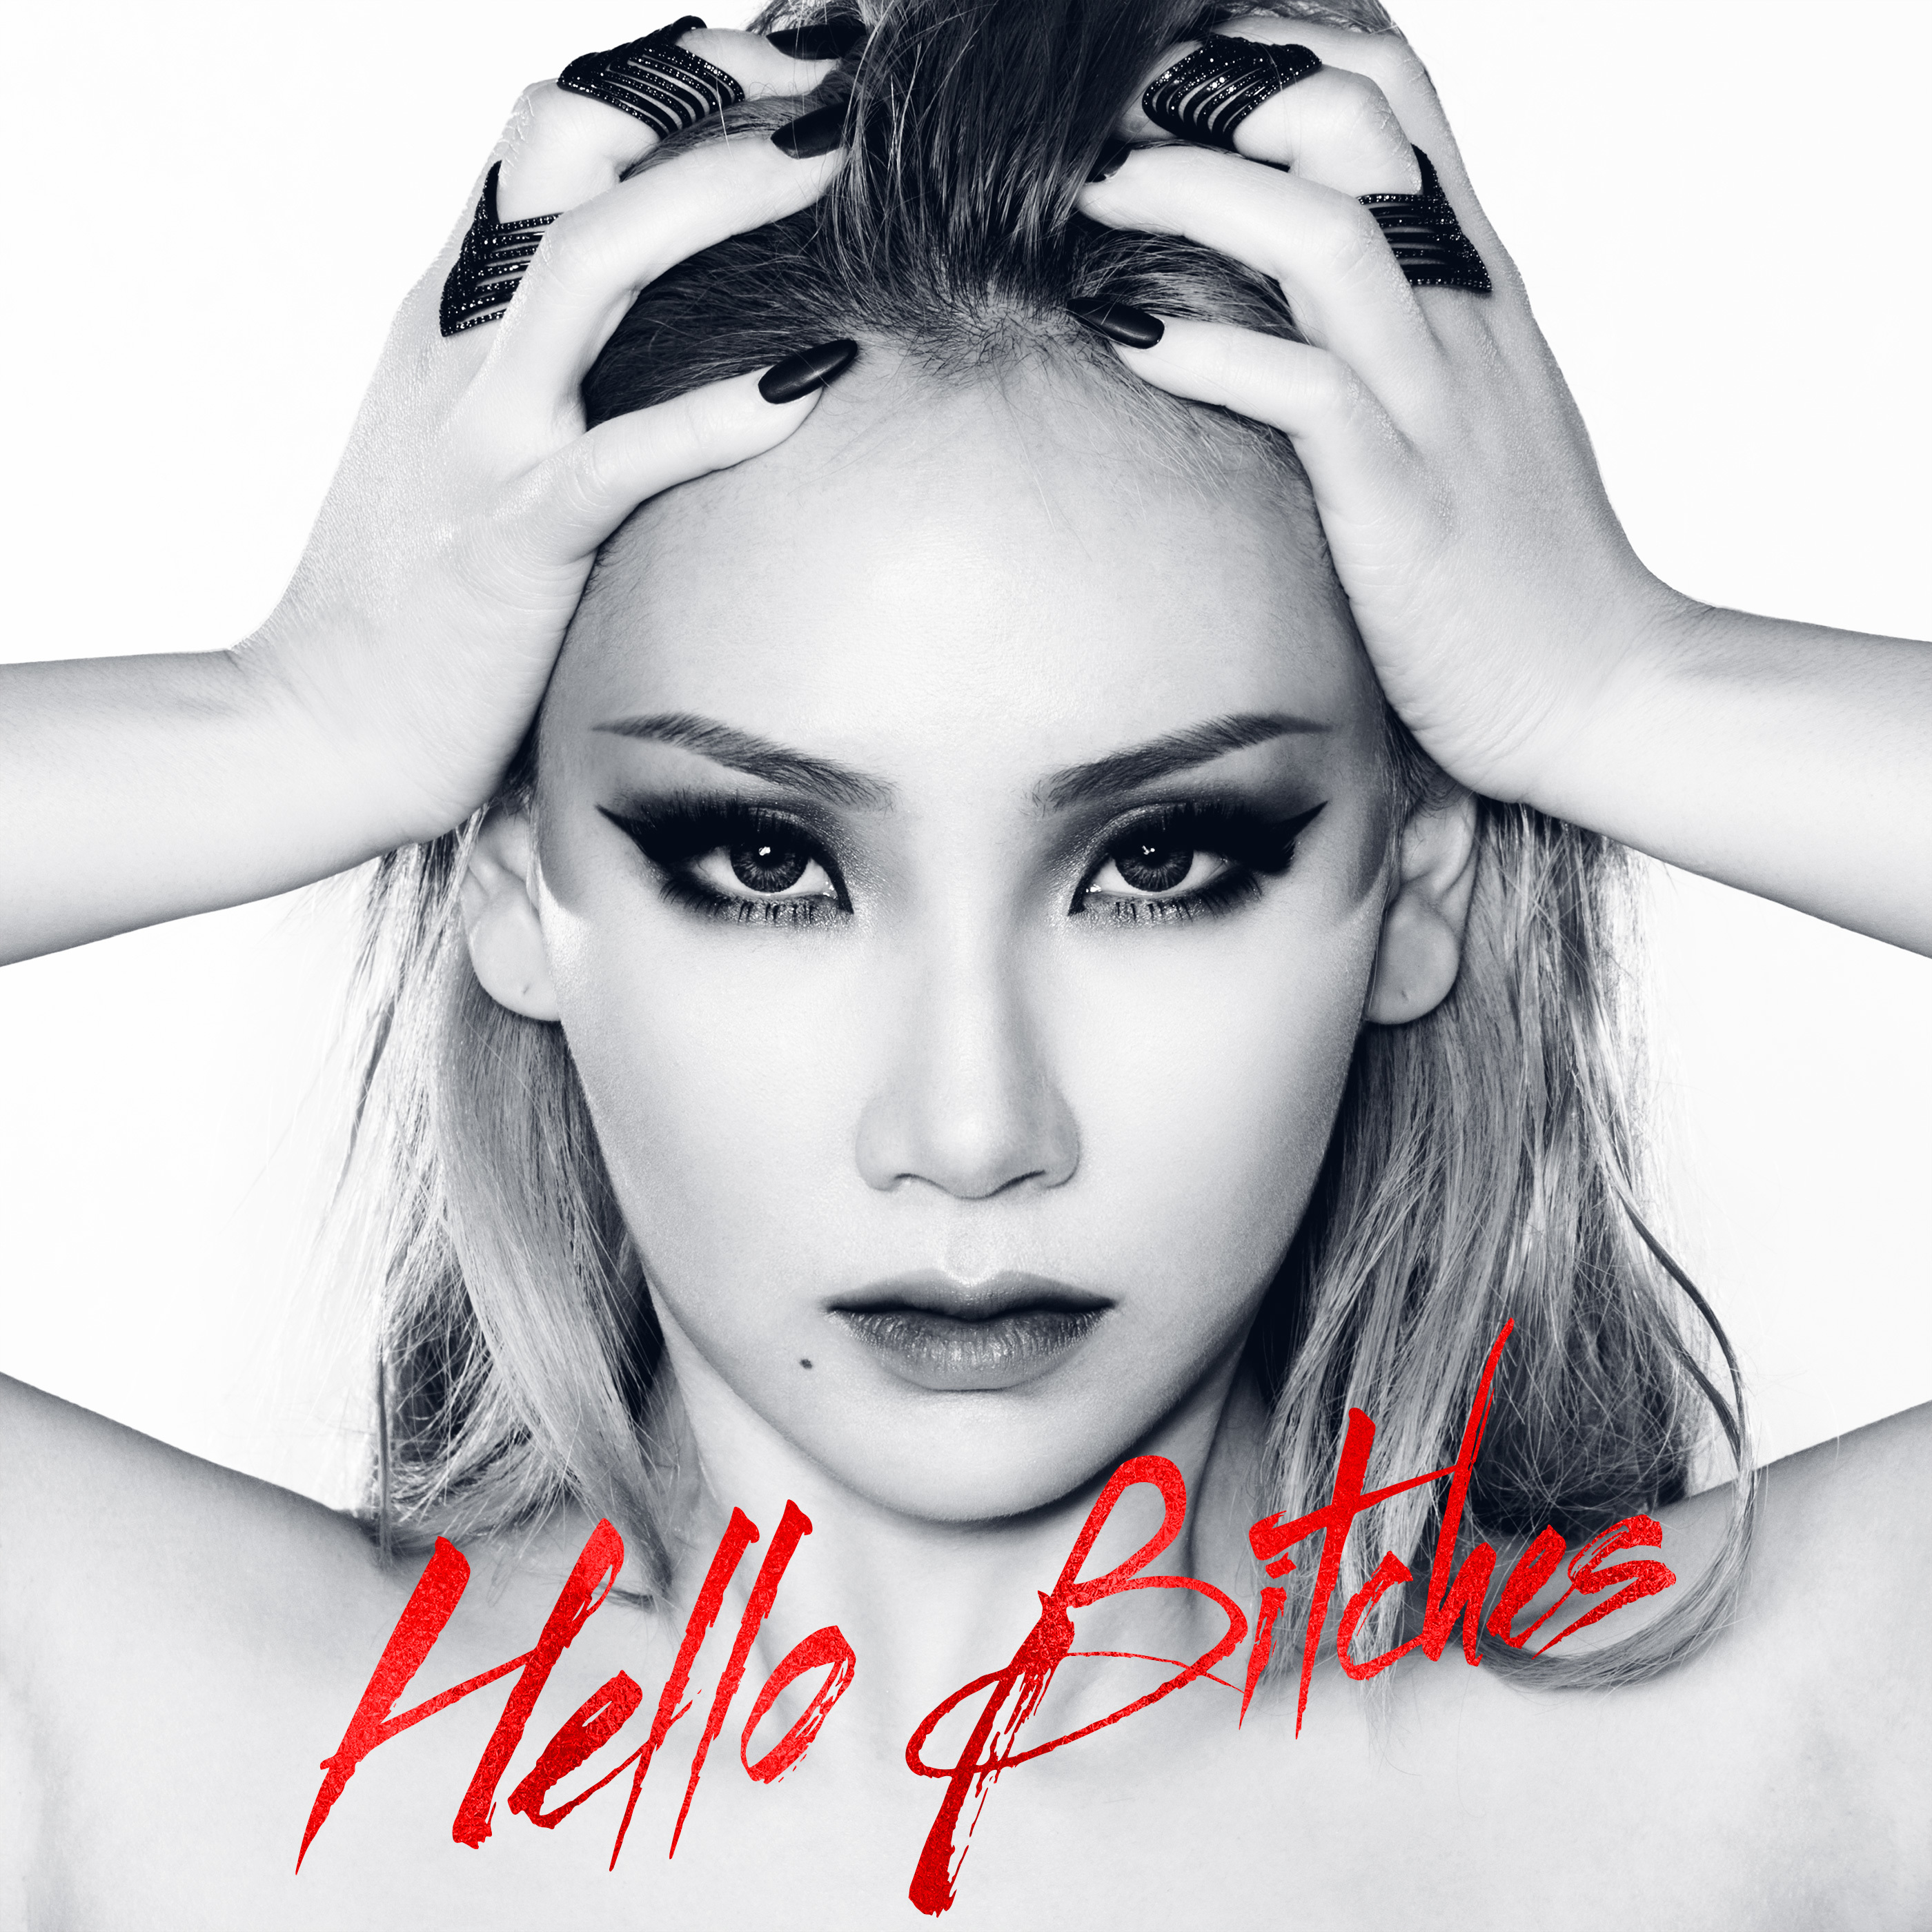 CL (2NE1) – Hello Bitches (Remaster) K2Ost free mp3 download korean song kpop kdrama ost lyric 320 kbps